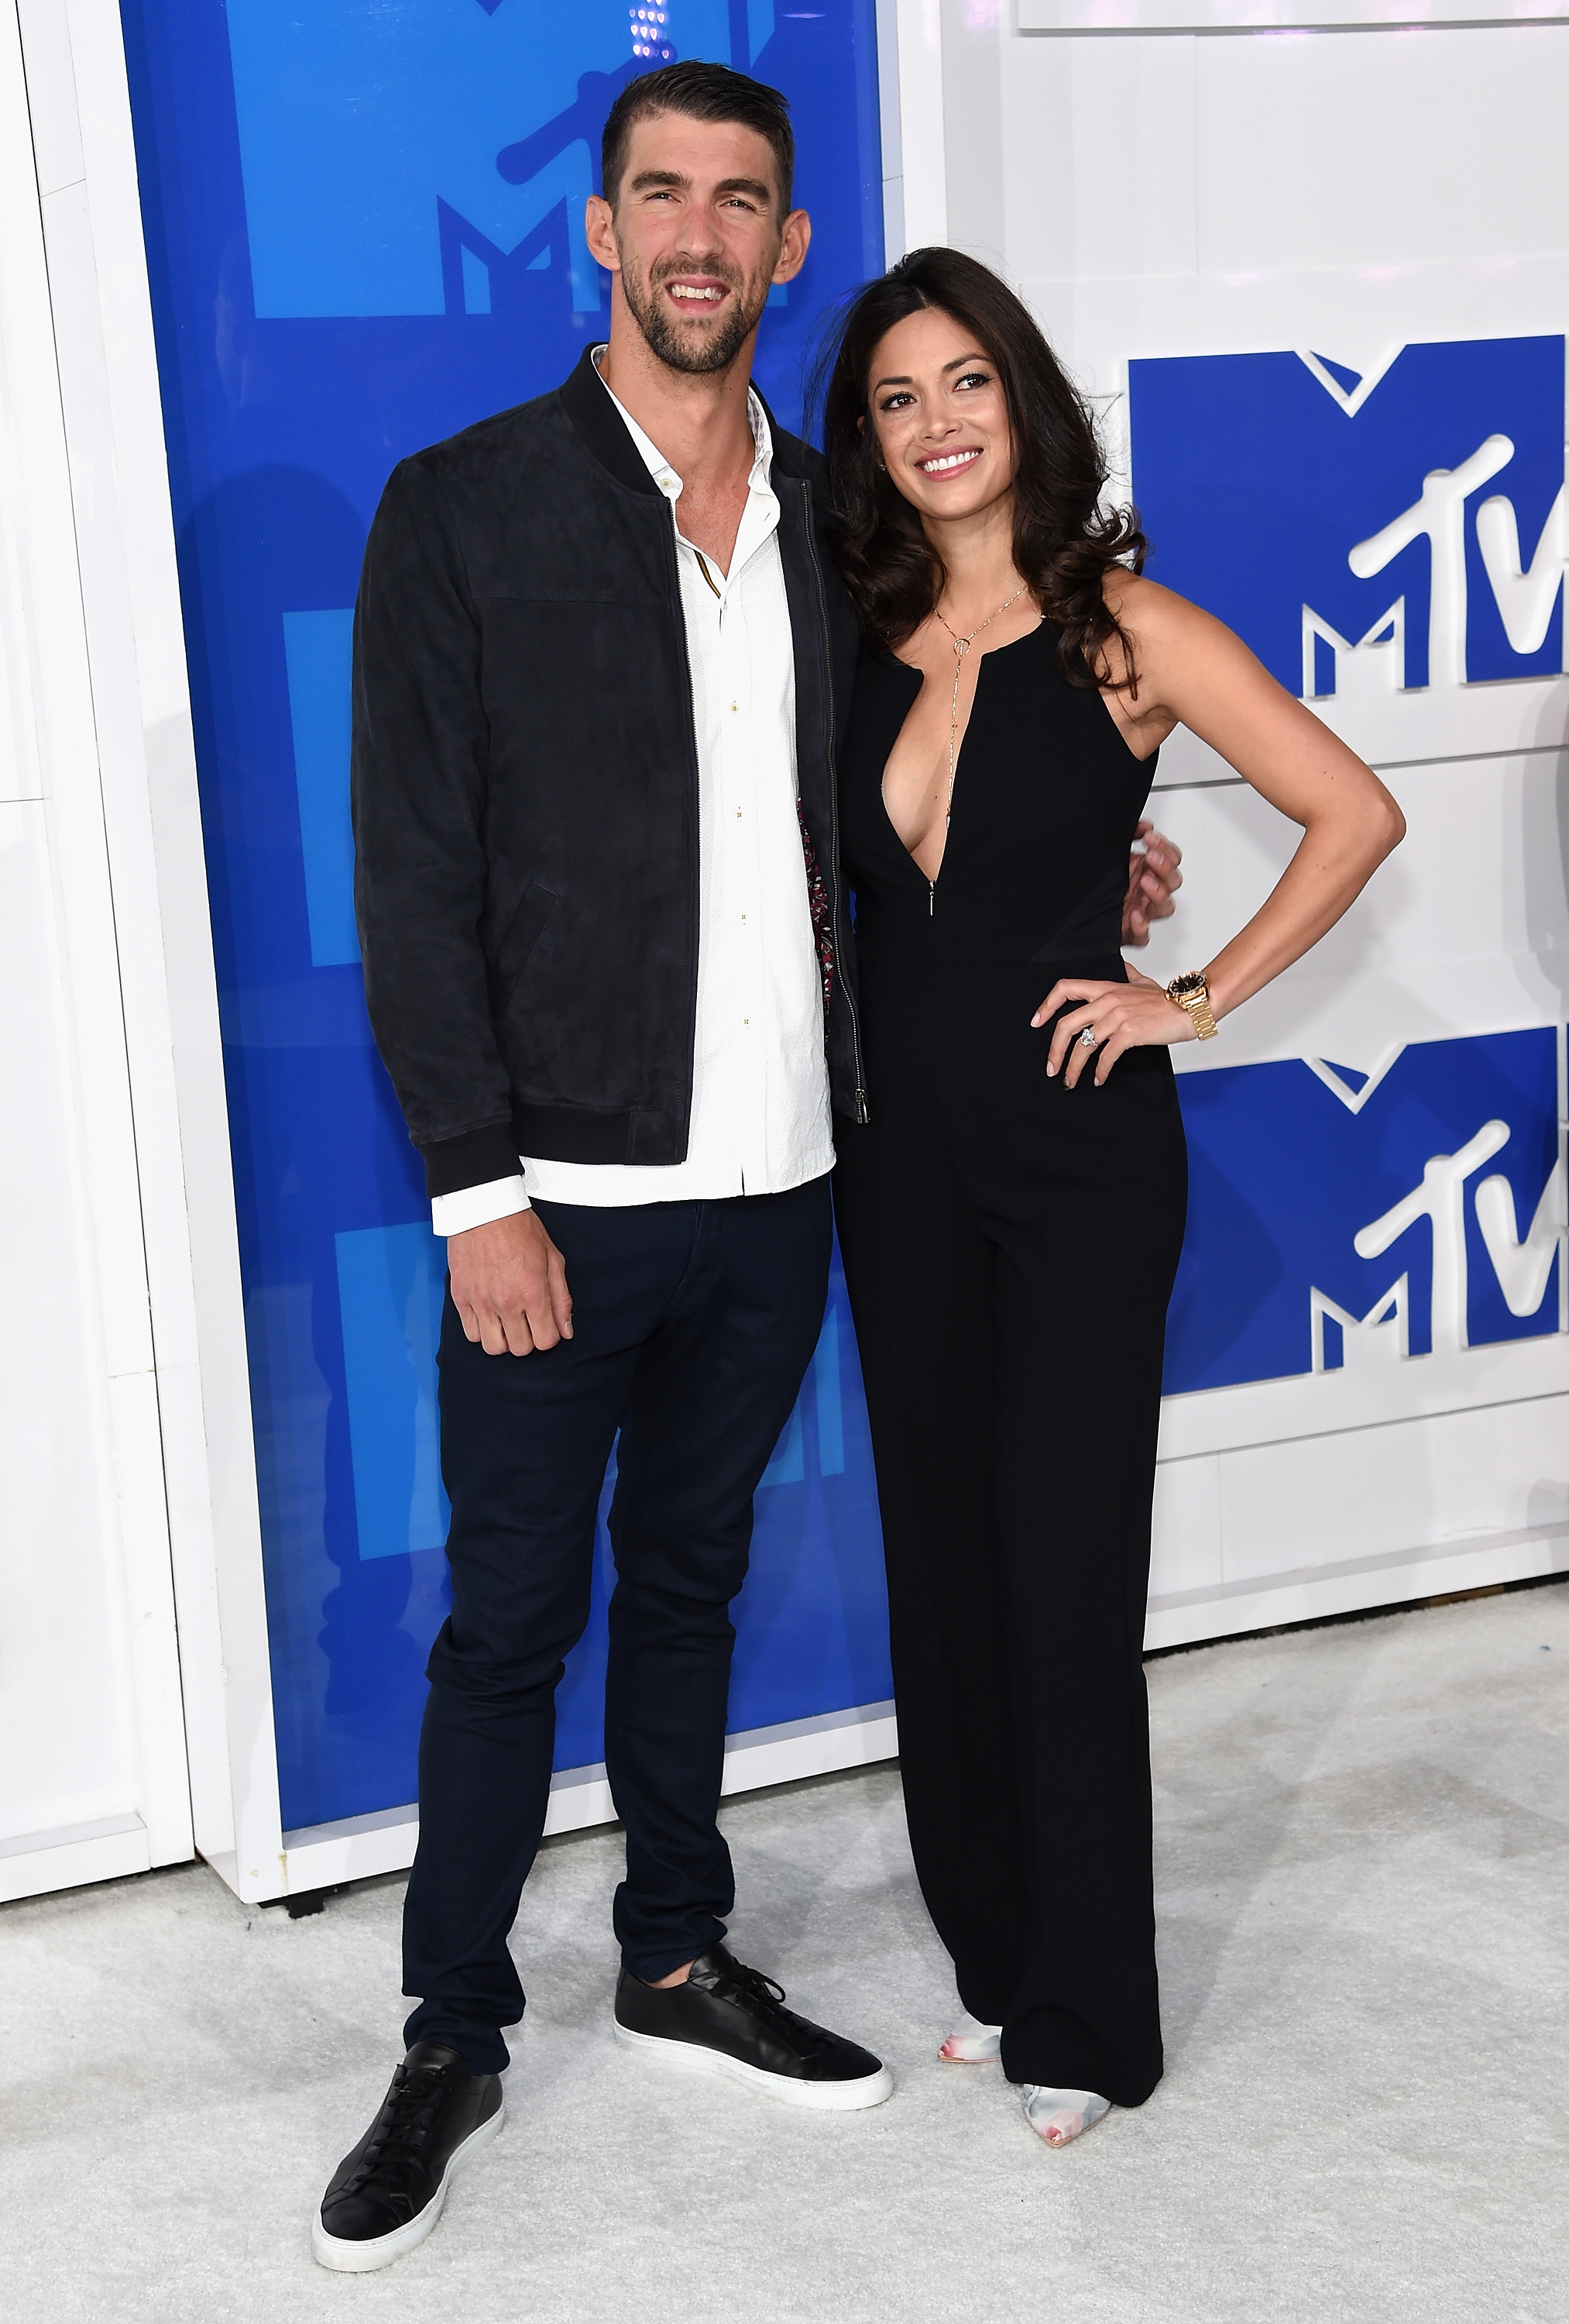 Michael Phelps and Nicole Johnson attend the 2016 MTV Video Music Awards at Madison Square Garden on Aug. 28, 2016 in New York City.